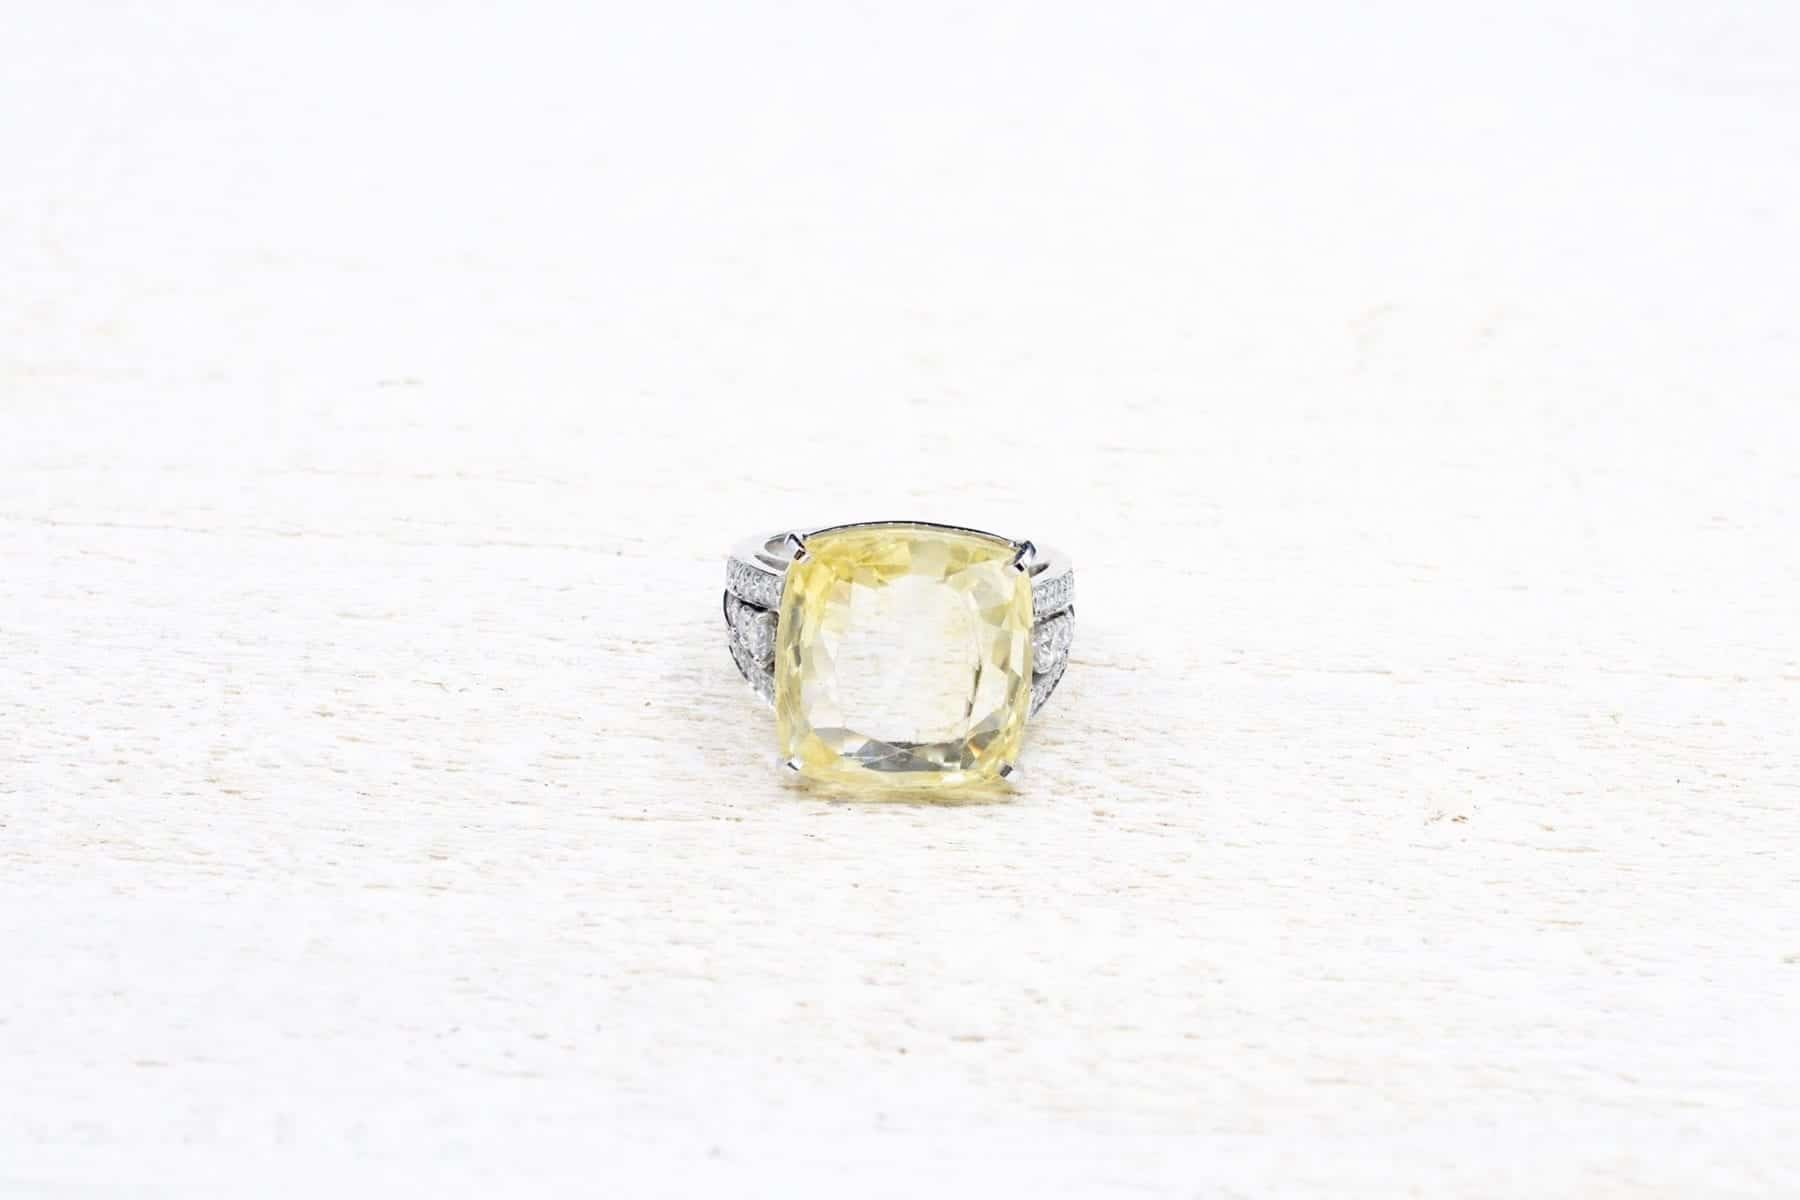 Bague saphir jaune et diamants ancinne